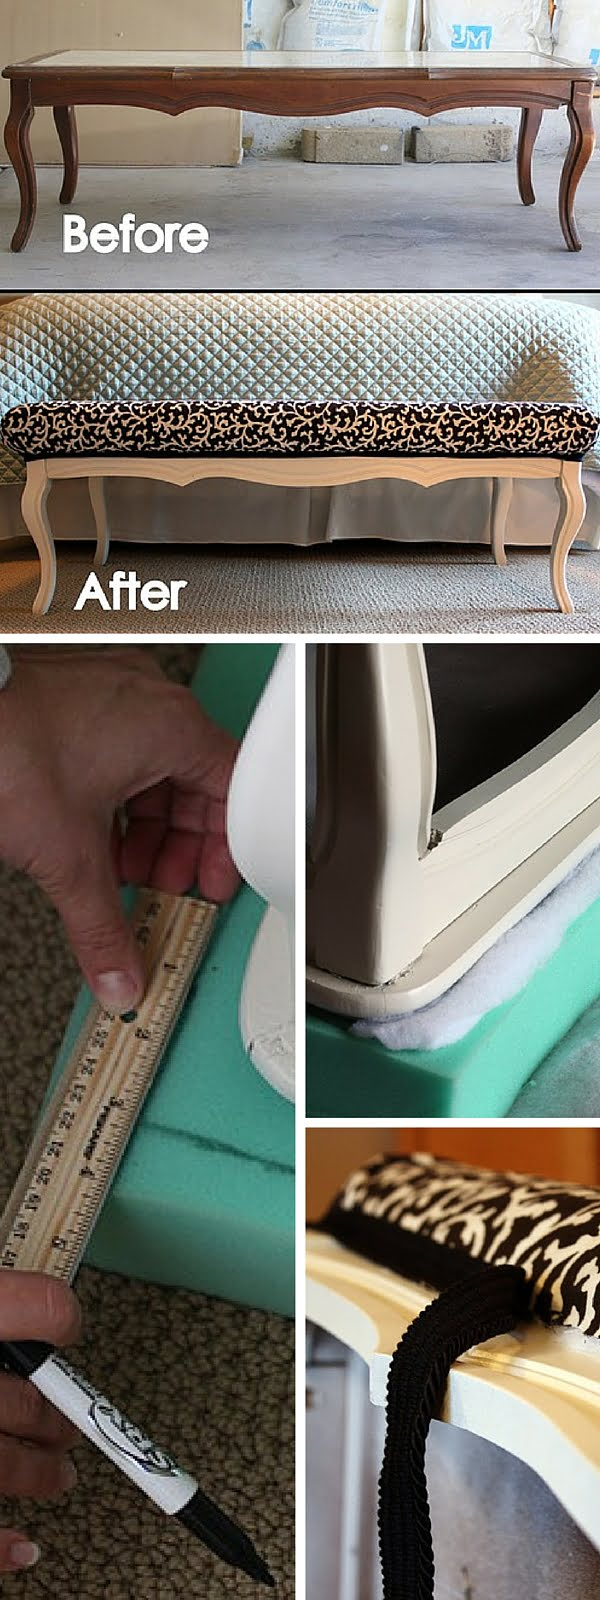 Check out the tutorial: #DIY Turn an Old Coffee Table into a Bench #crafts